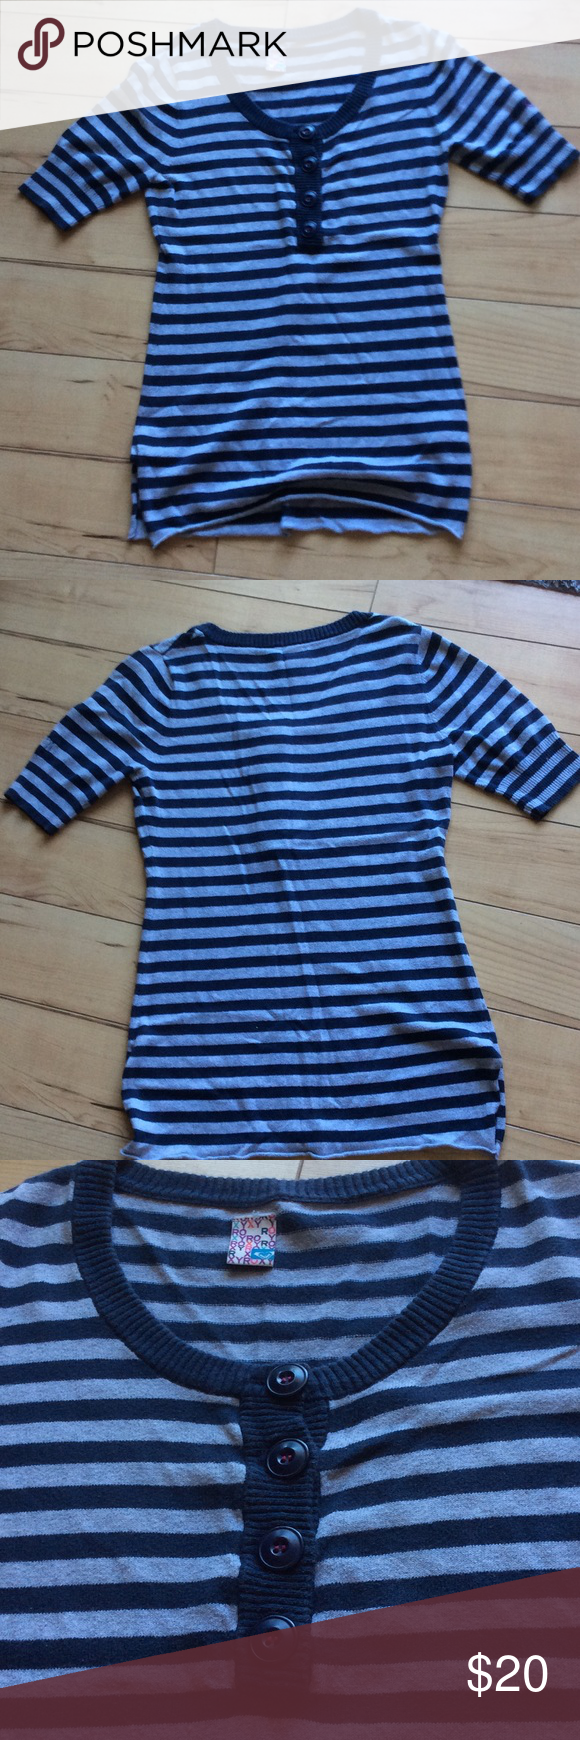 Roxy short sleeved sweater Navy blue and grey striped short sleeve ...